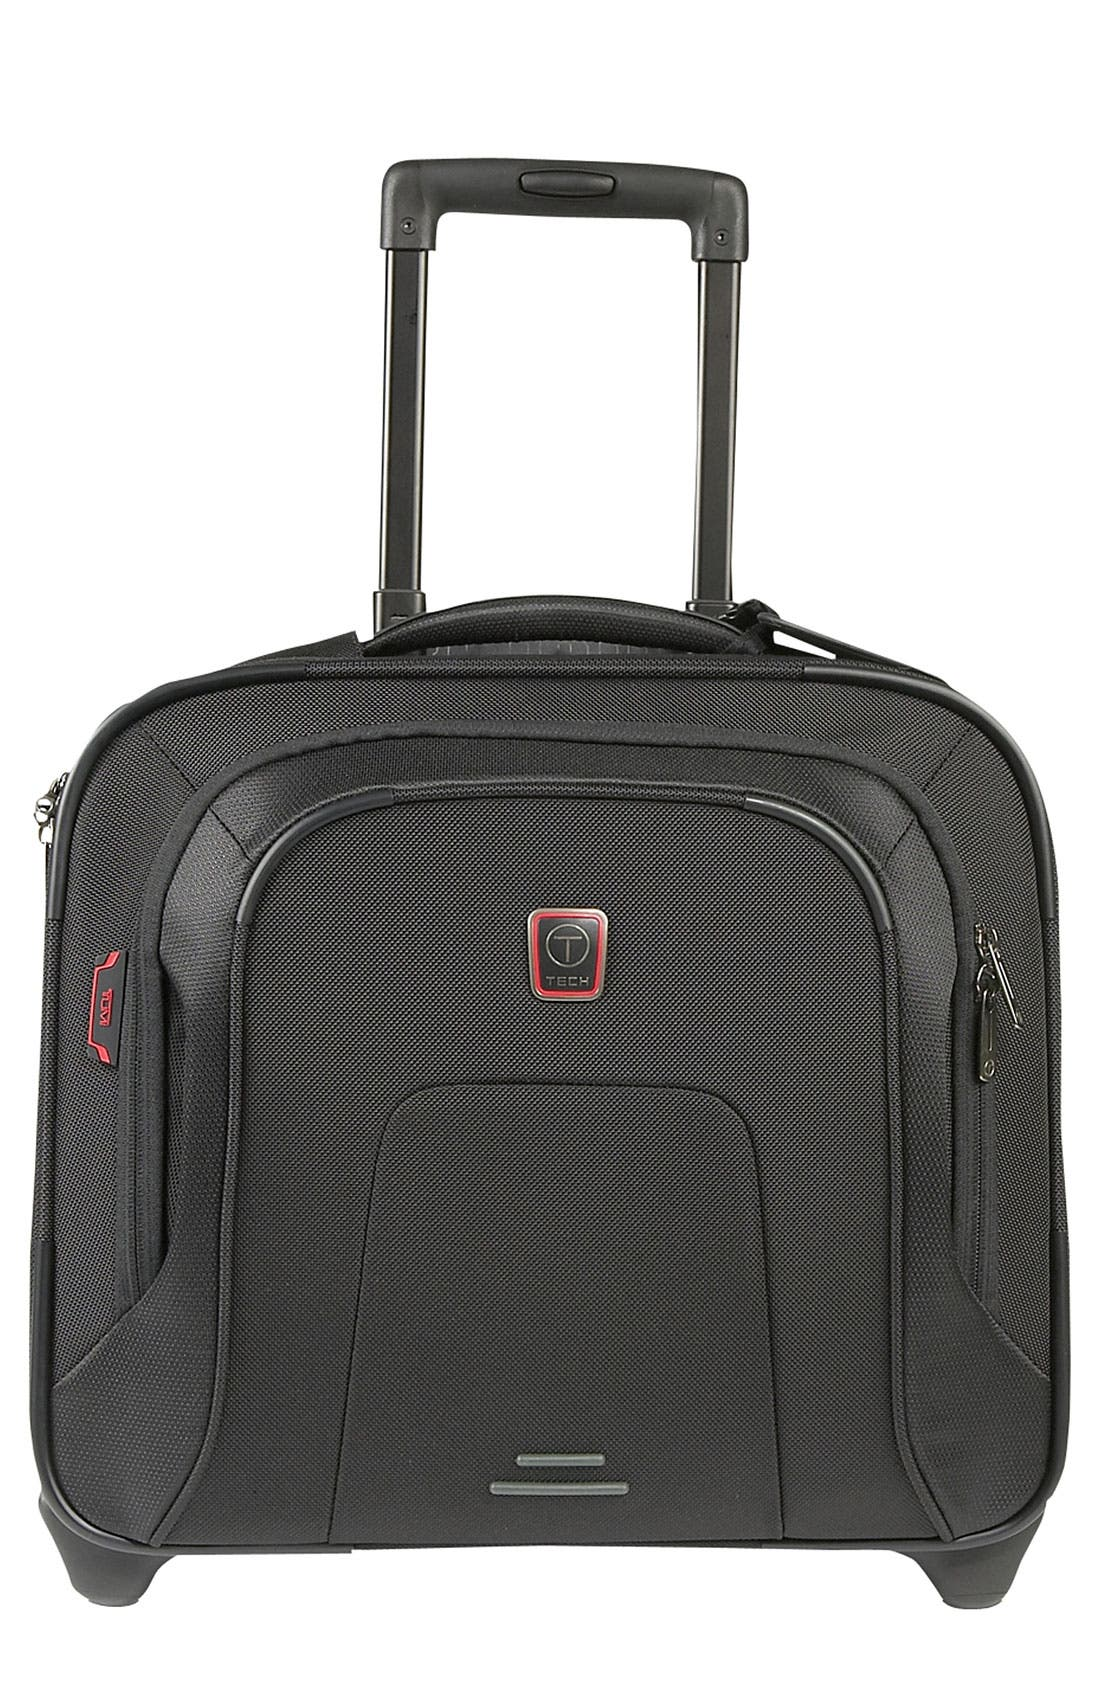 Alternate Image 1 Selected - T-Tech by Tumi 'Presidio MacArthur' Wheeled Compact Laptop Briefcase